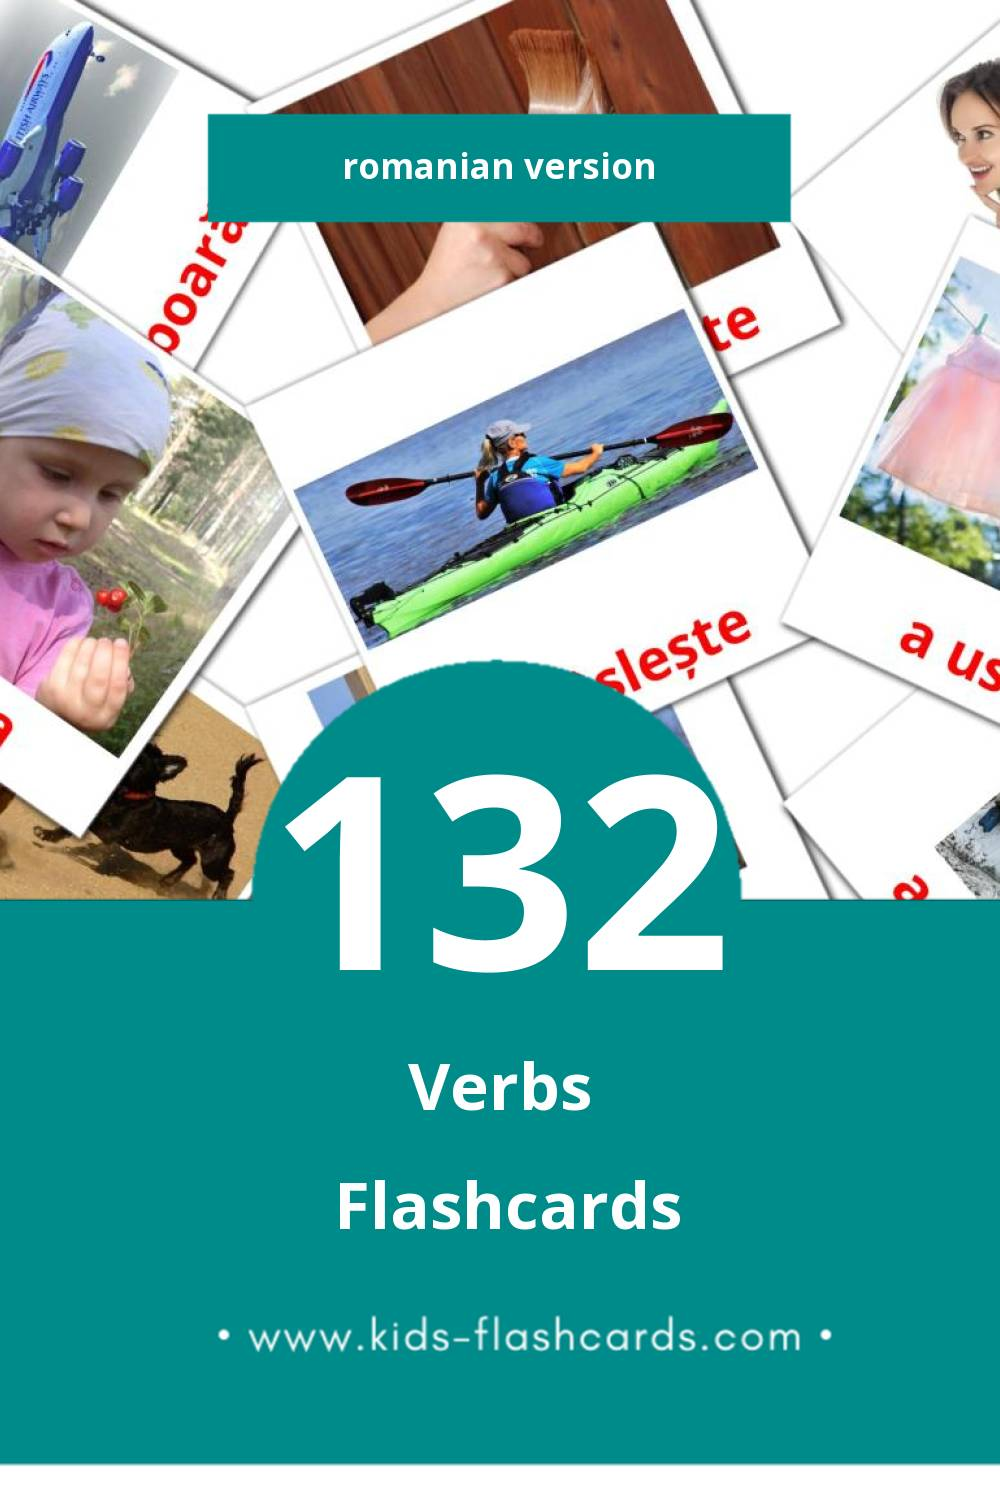 Visual Verbe  Flashcards for Toddlers (133 cards in Romanian)